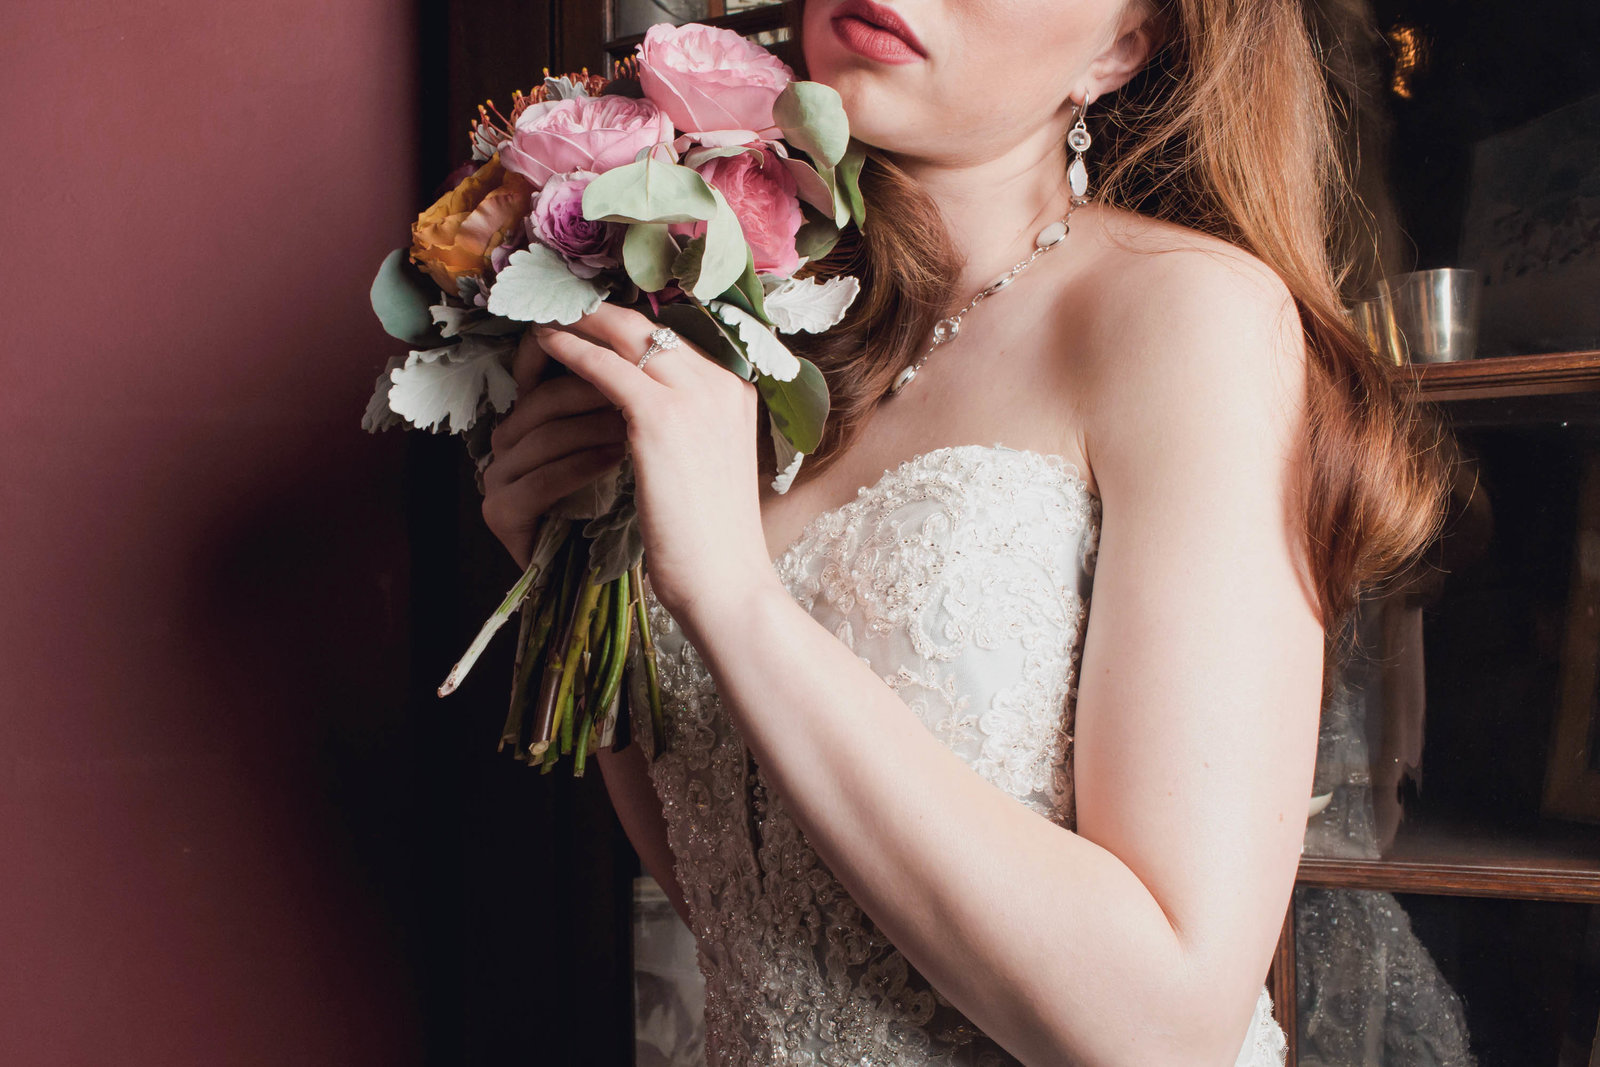 bouquet-david-tutera-mon-cheri-bridal-sweetwater-farm-winery-philadelphia-fashion-delaware-main-line-today-magazine-bridal-editorial-photography-kate-timbers253